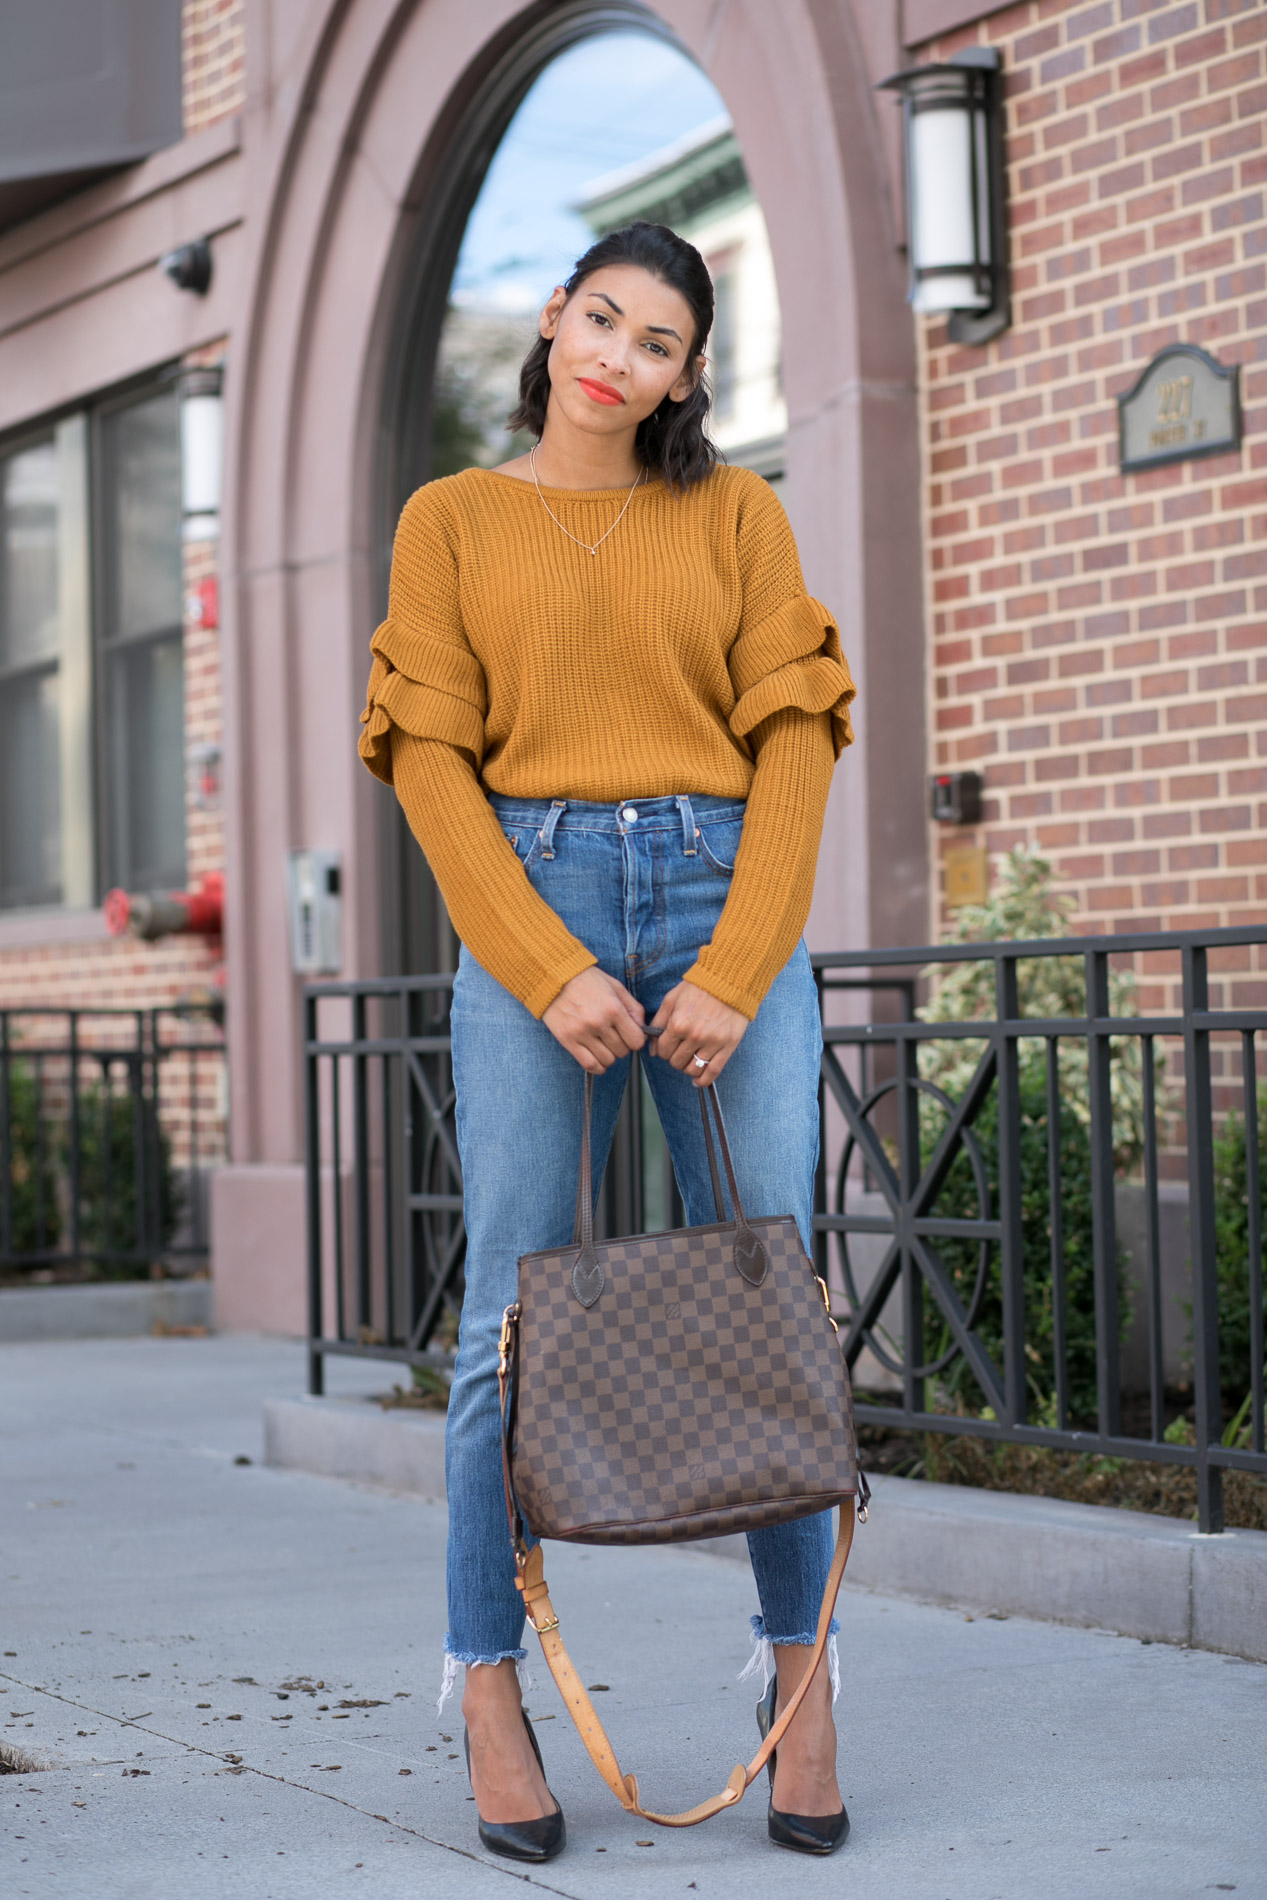 The 4 Must Have Sweater Trends This Fall